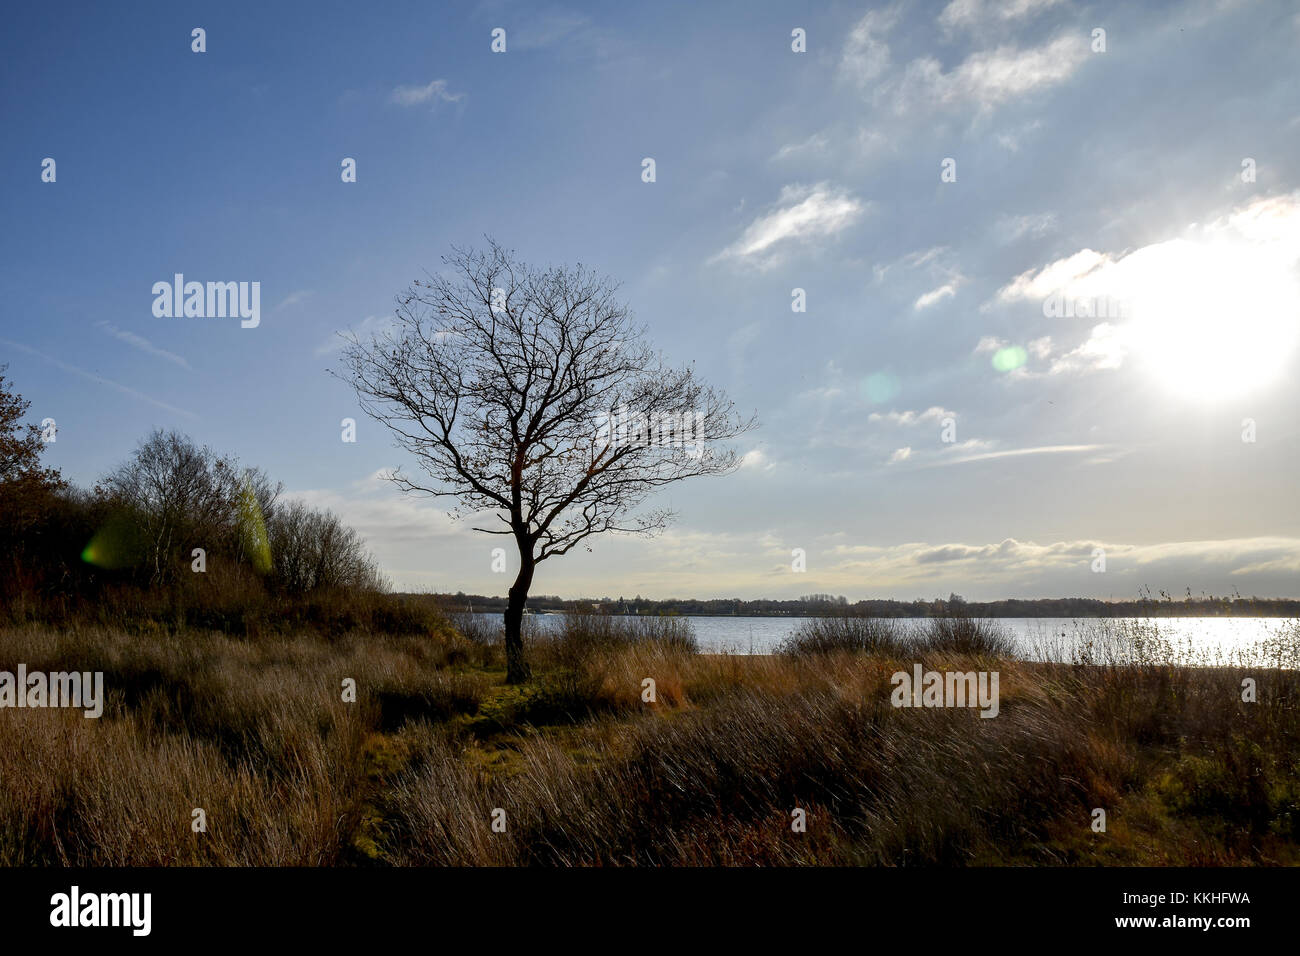 Cannock, Staffordshire. 1st Dec, 2017. UK Weather. The shoreline in places remains frozen at Chasewater in Staffordshire - Stock Image